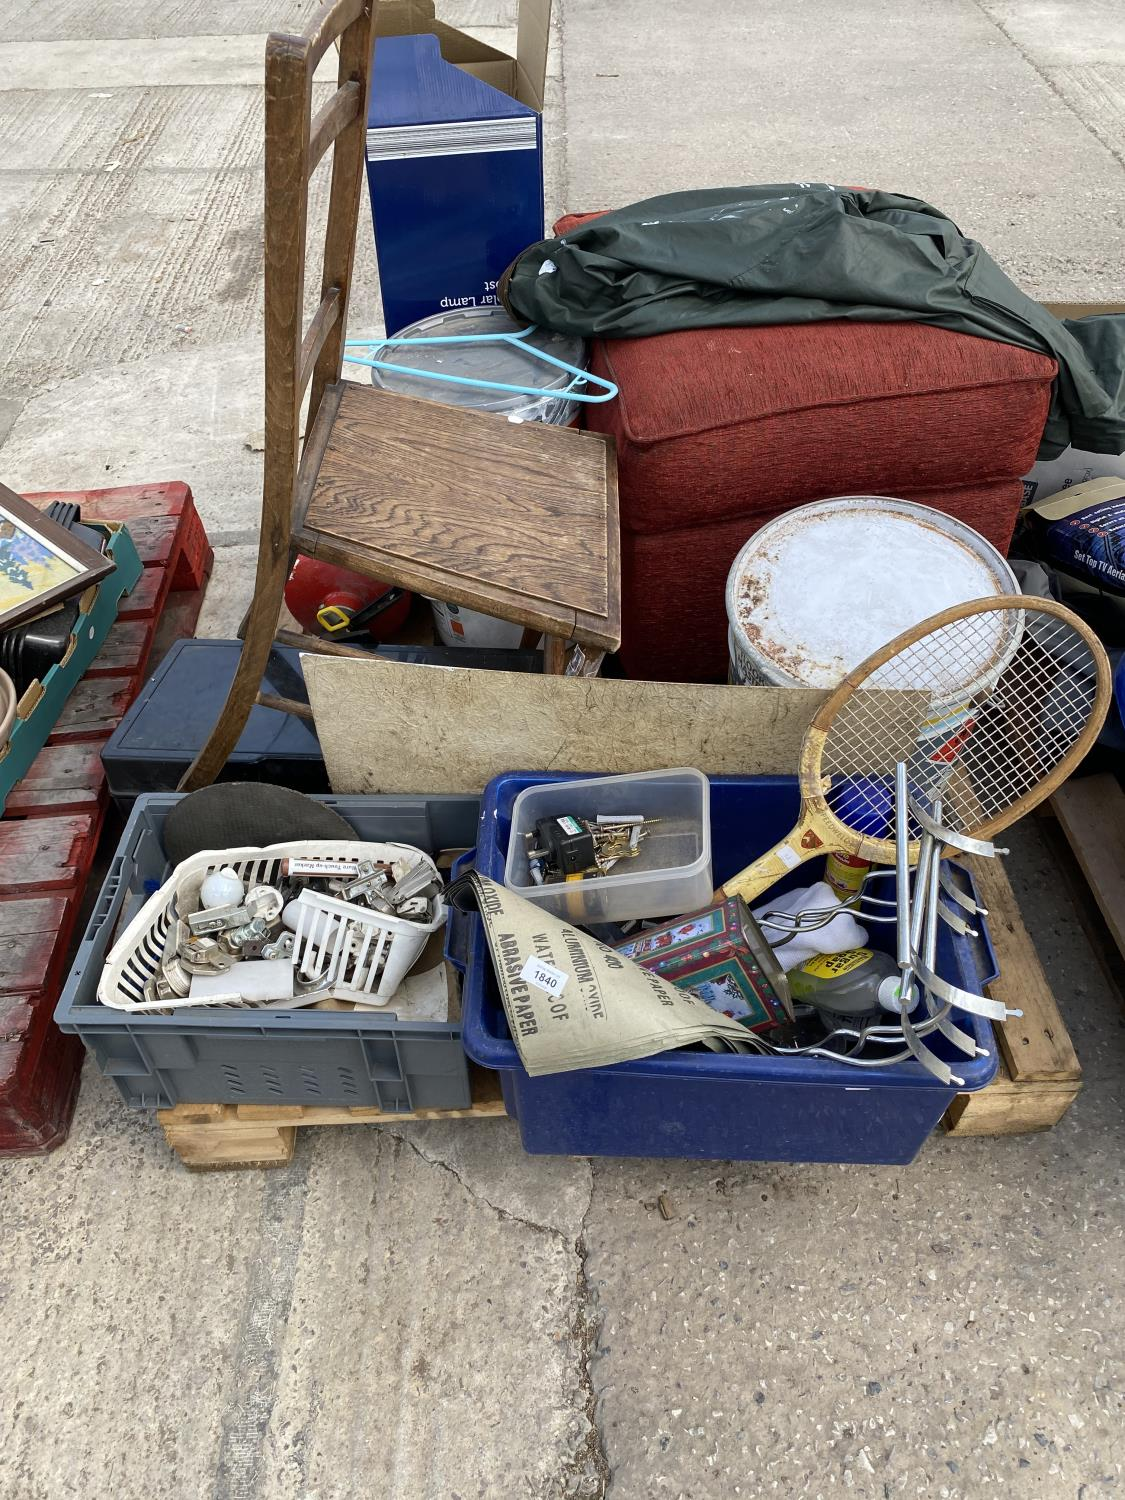 AN ASSORTMENT OF HOUSEHOLD CLEARANCE ITEMS TO INCLUDE A FOOT STOOL, A CHAIR AND HARDWARE ETC